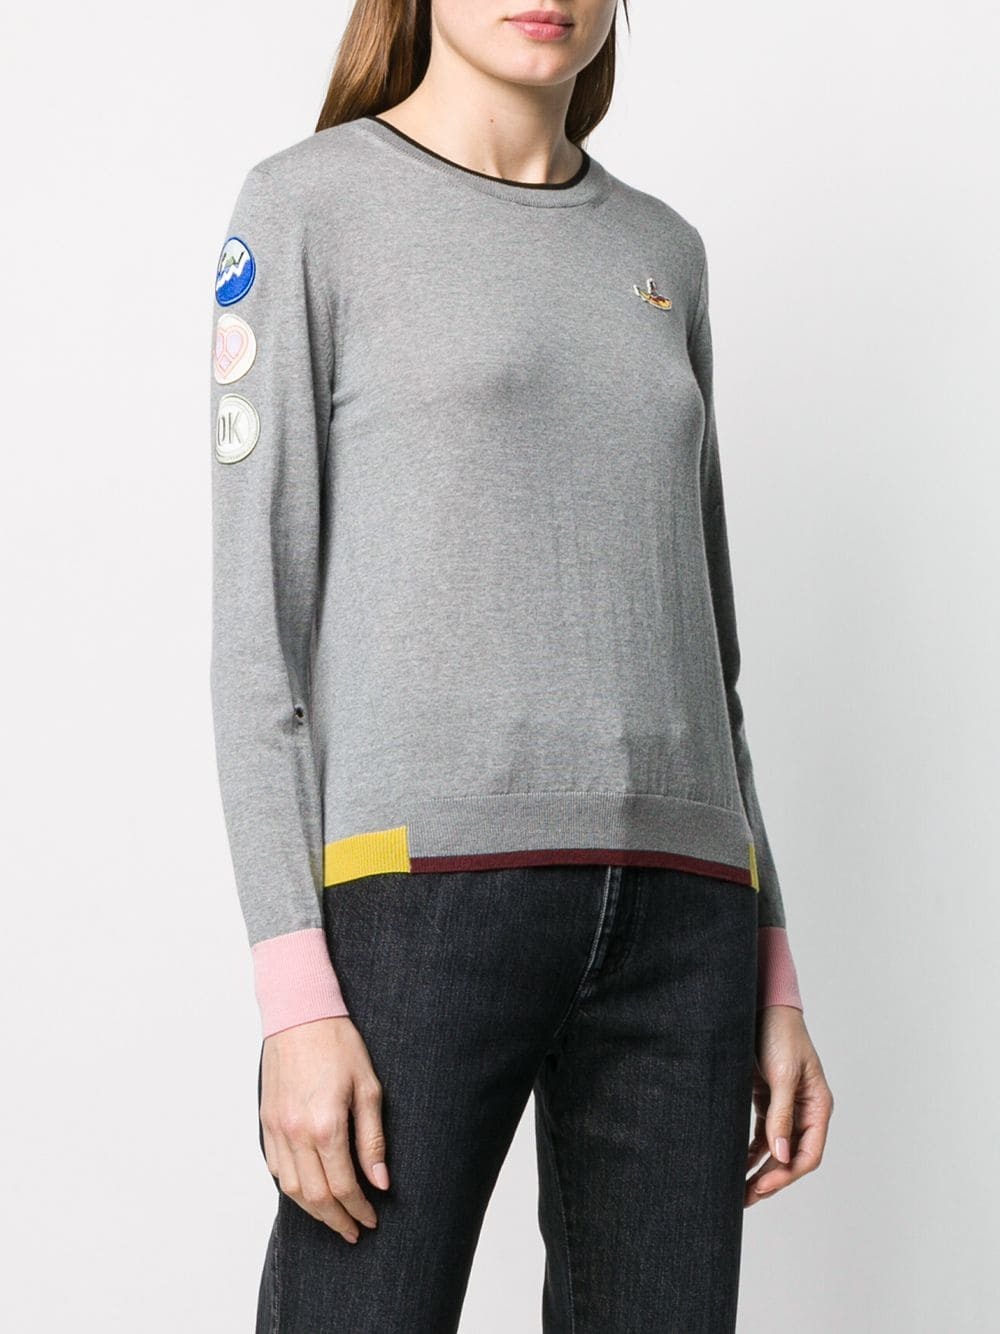 All togerther now light grey jumbper with multicolor details and side patch STELLA MC CARTNEY |  | 579834-S21081262